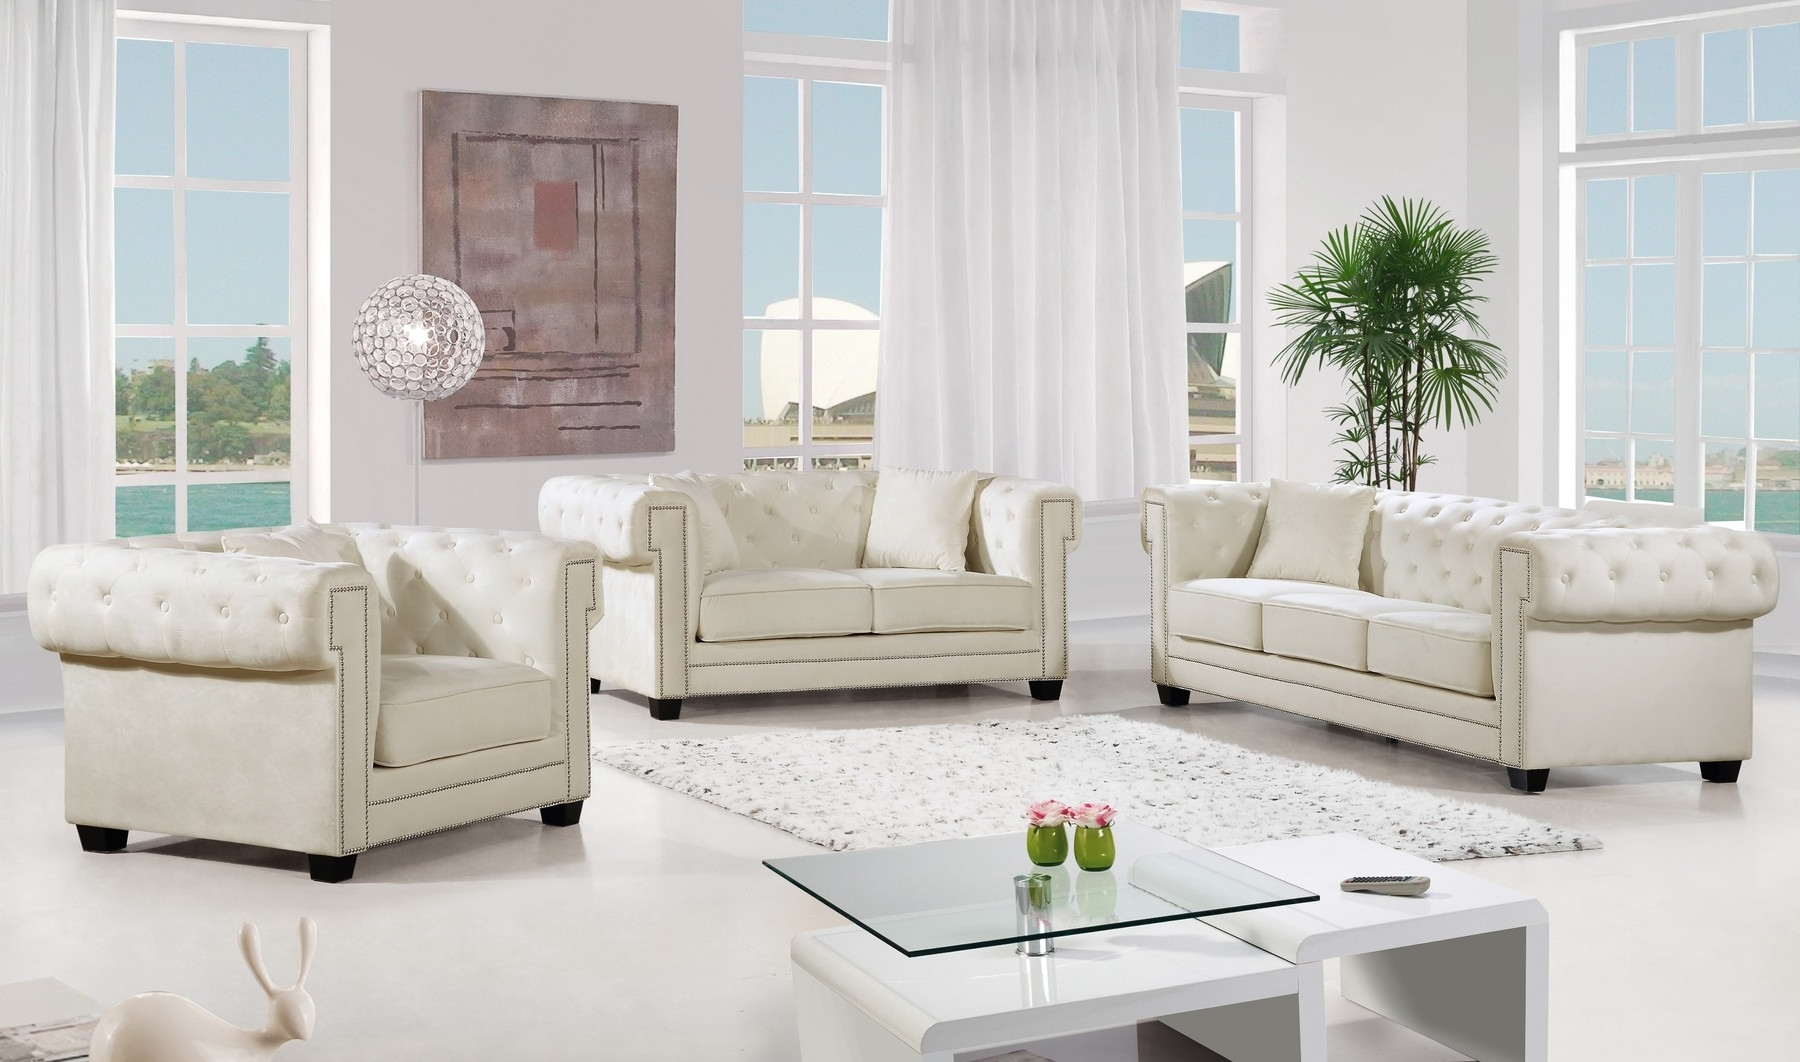 Bowery Cream Sofa 614 Meridian Furniture Fabric Sofas At Comfyco Within Well Liked Fabric Sofas (View 14 of 15)